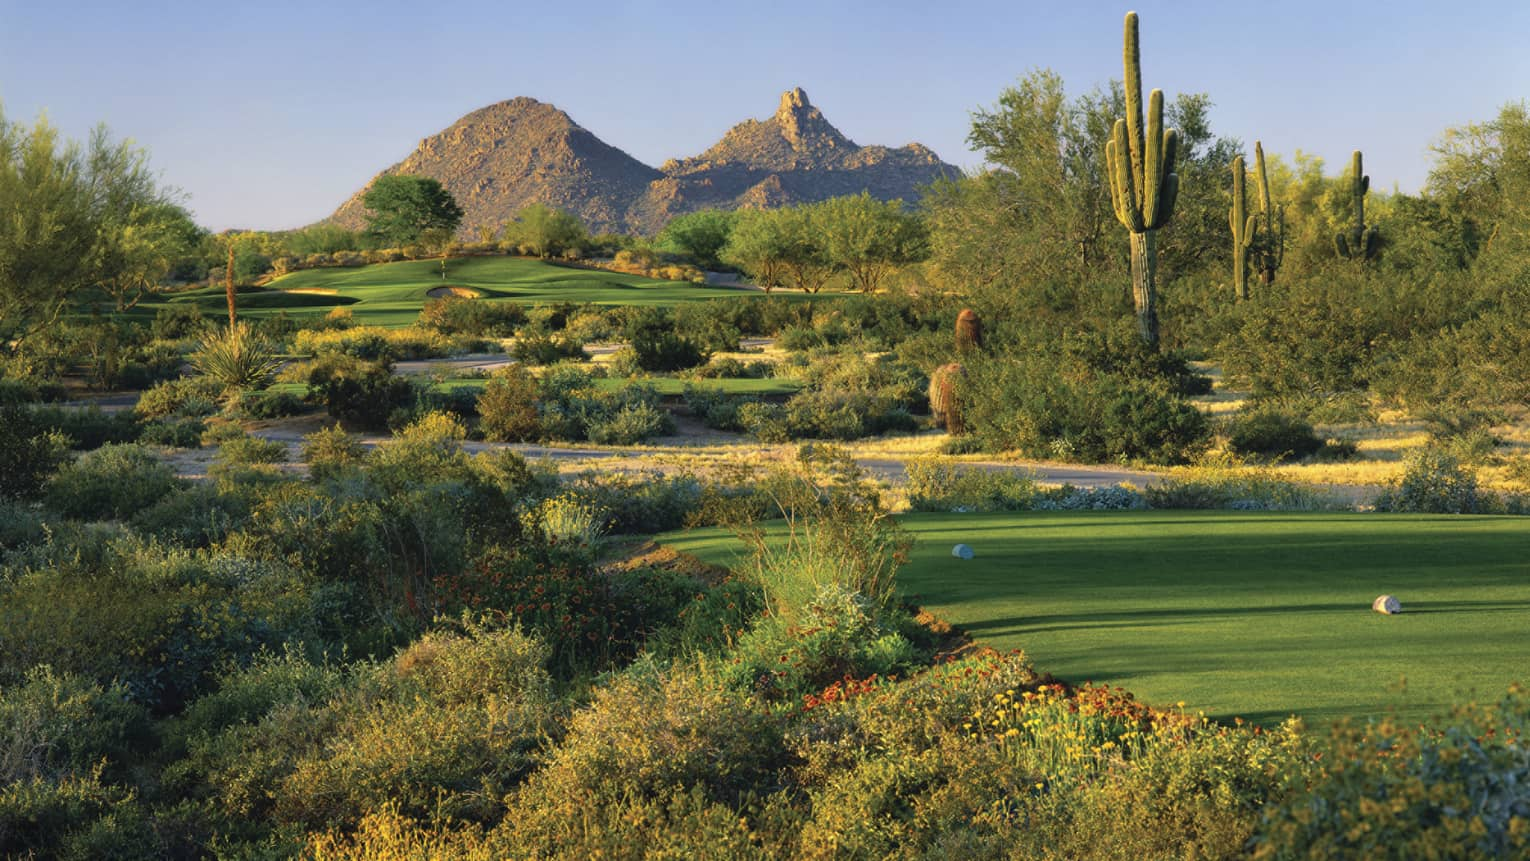 Troon North Golf Club greens, shrubs, tall cactus, mountain in background